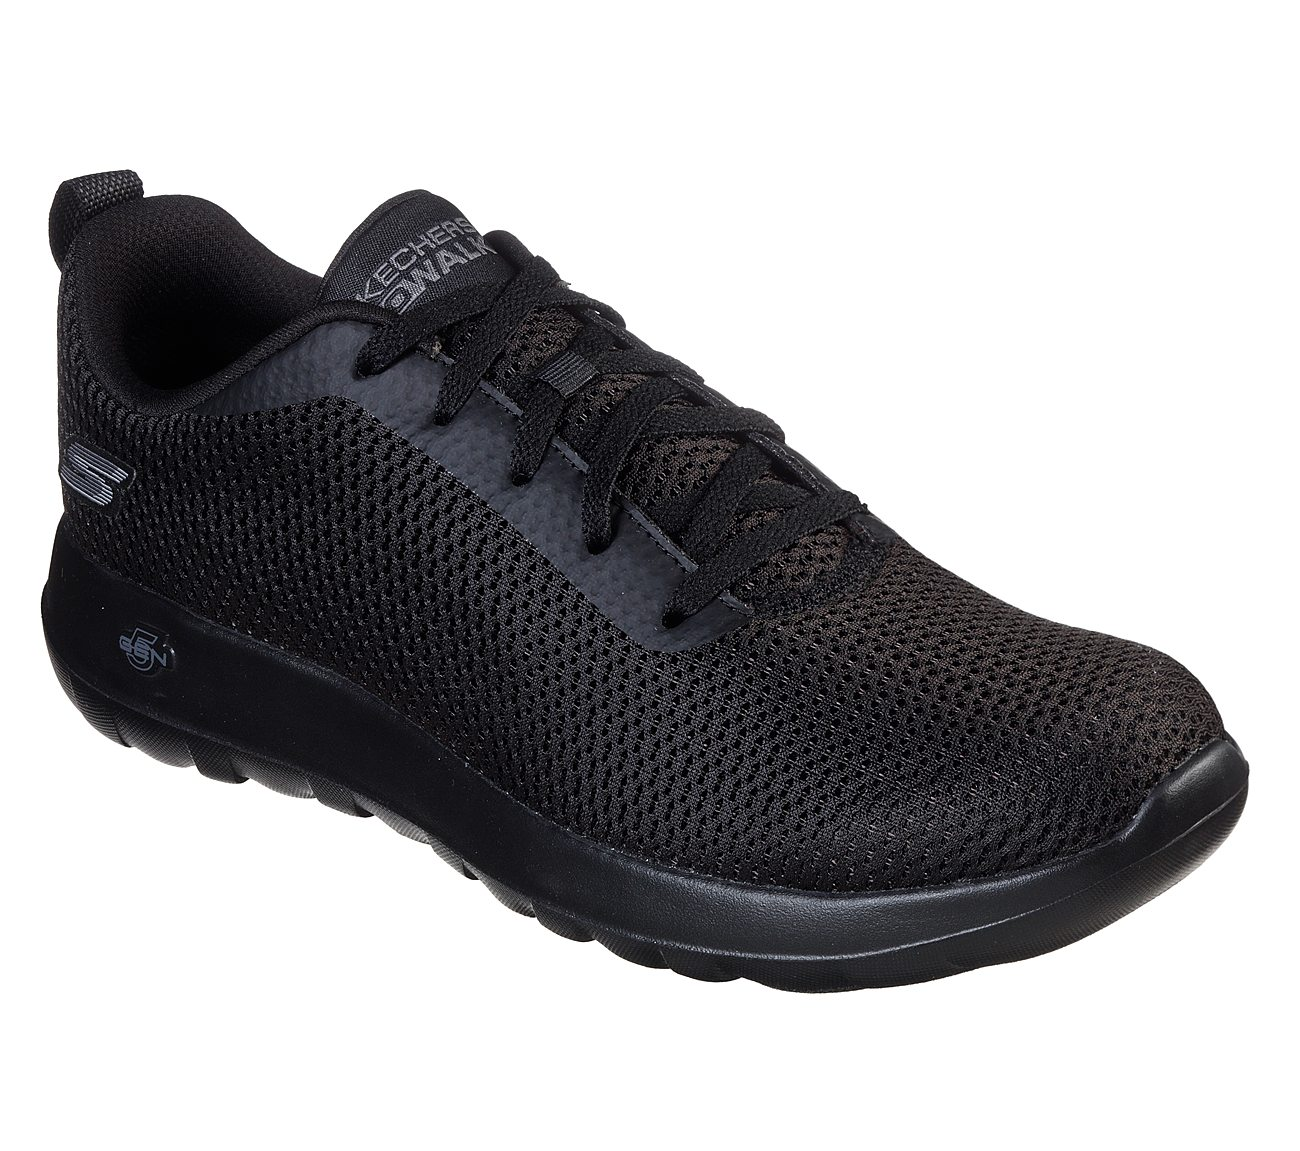 Skechers GoGa Max Generation 5 Sneakers